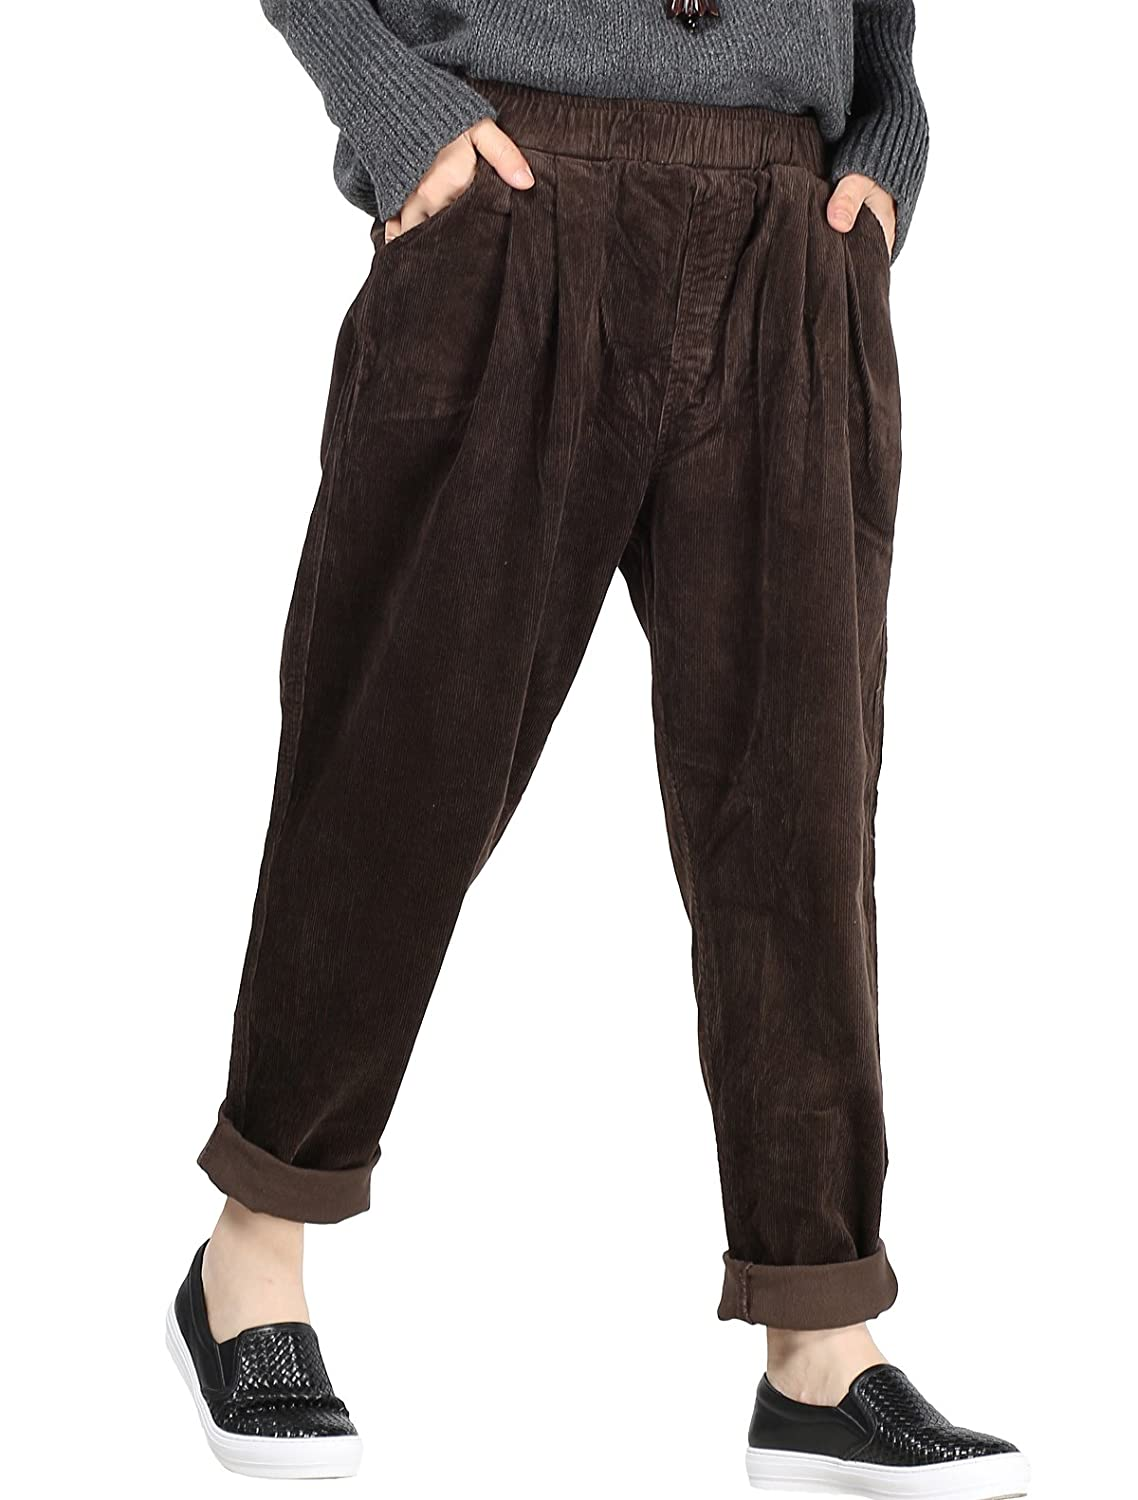 Mordenmiss Women's Fall/Winter Casual Corduroy Pants with Pockets